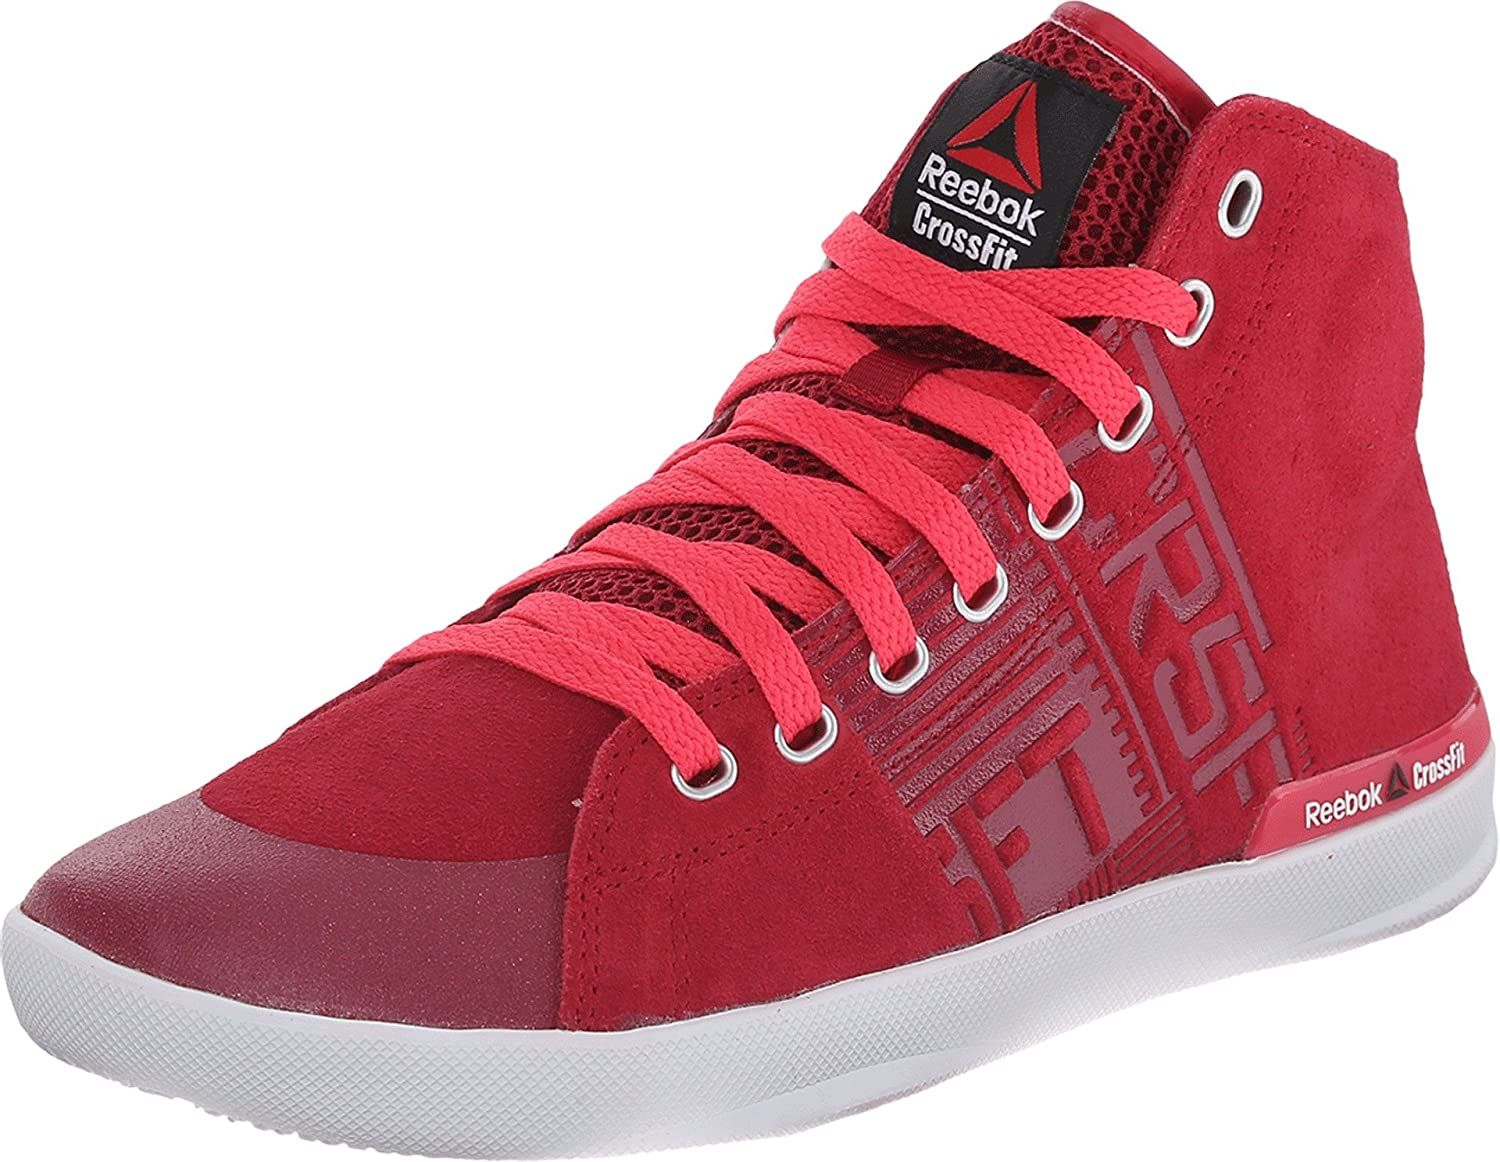 reebok crossfit shoes high top. reebok crossfit lite tr suede womens training shoe shoes high top